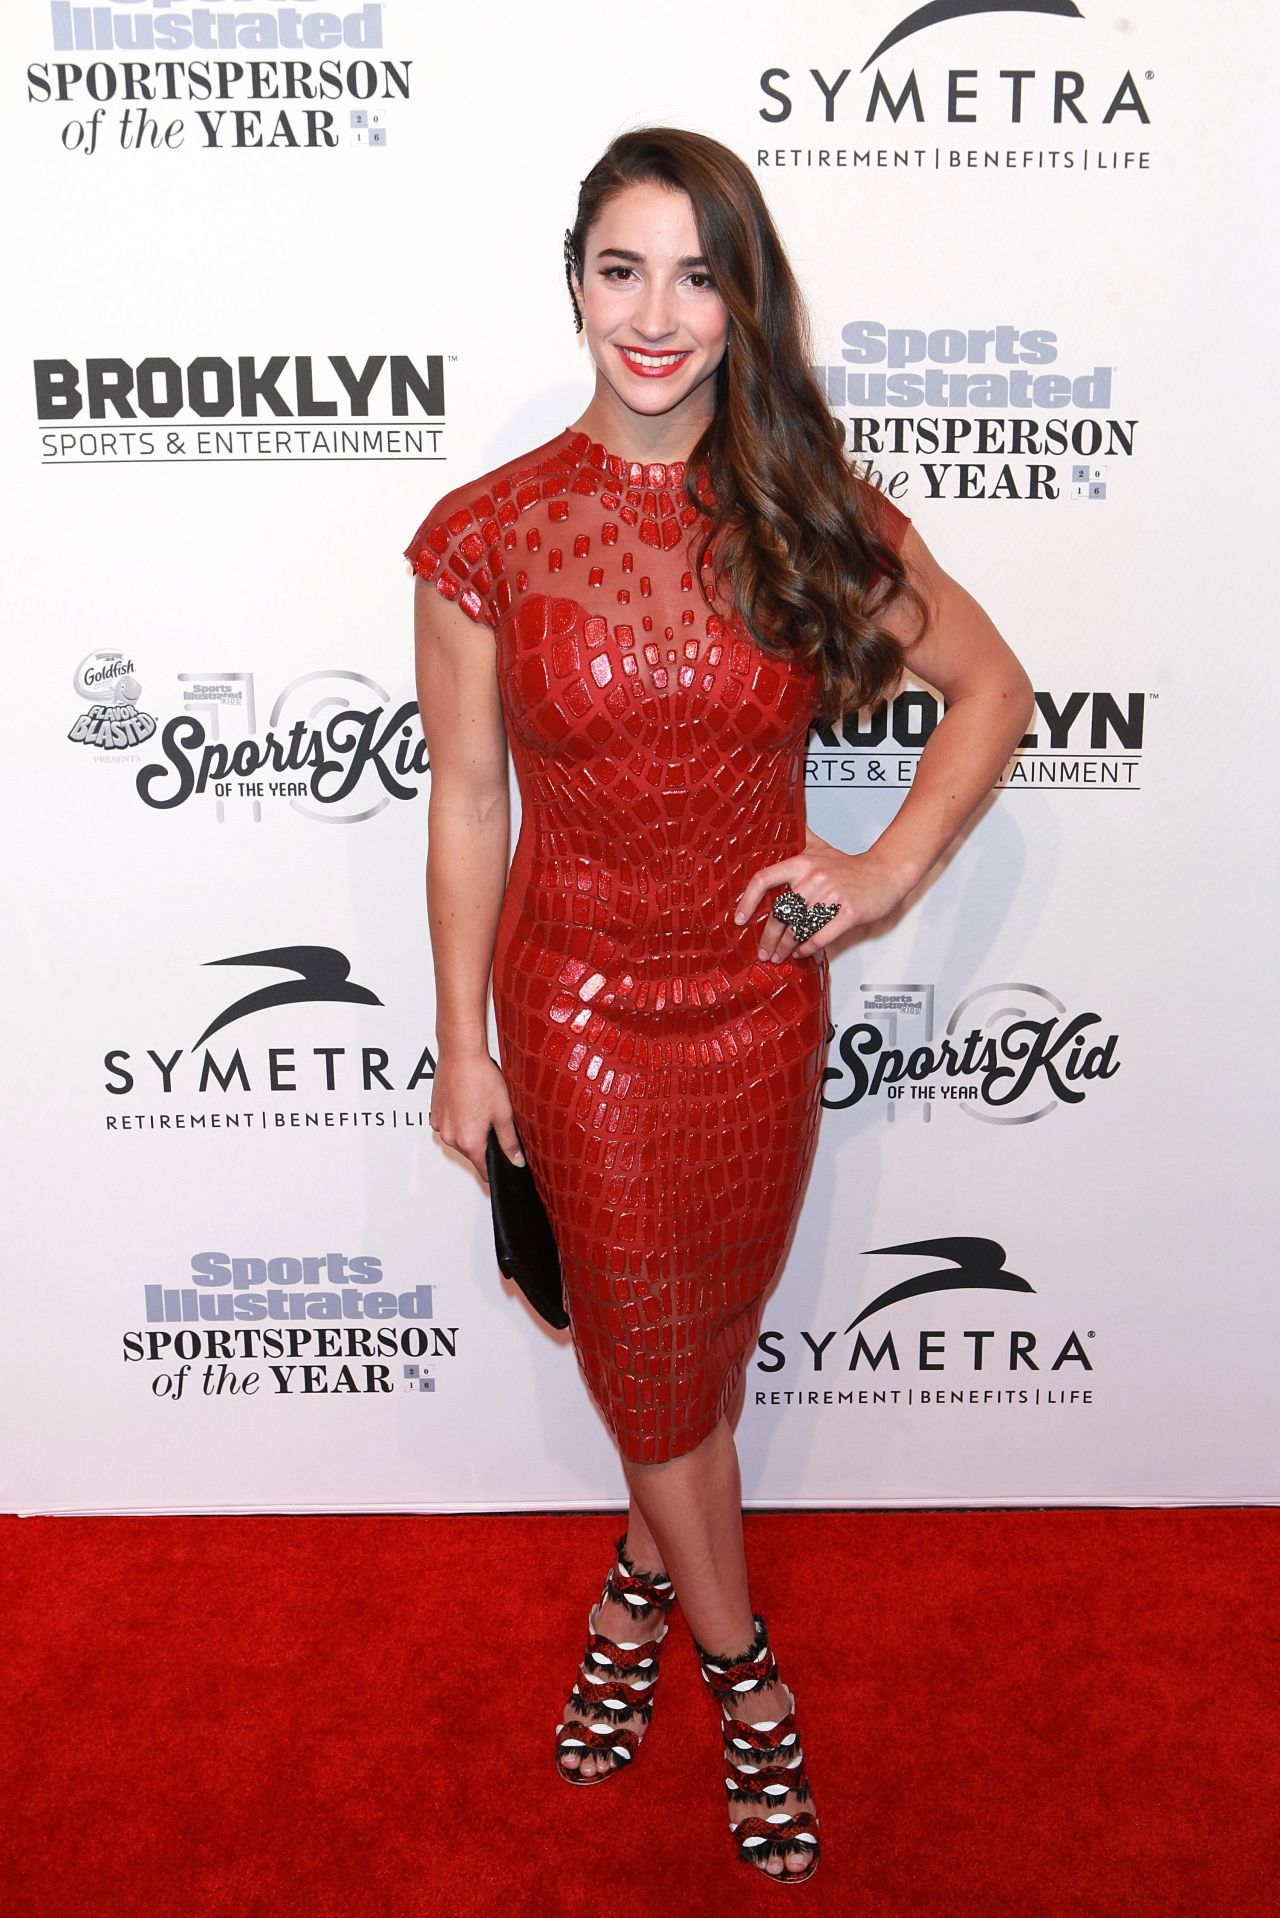 Aly Raisman Sexy Red Dress